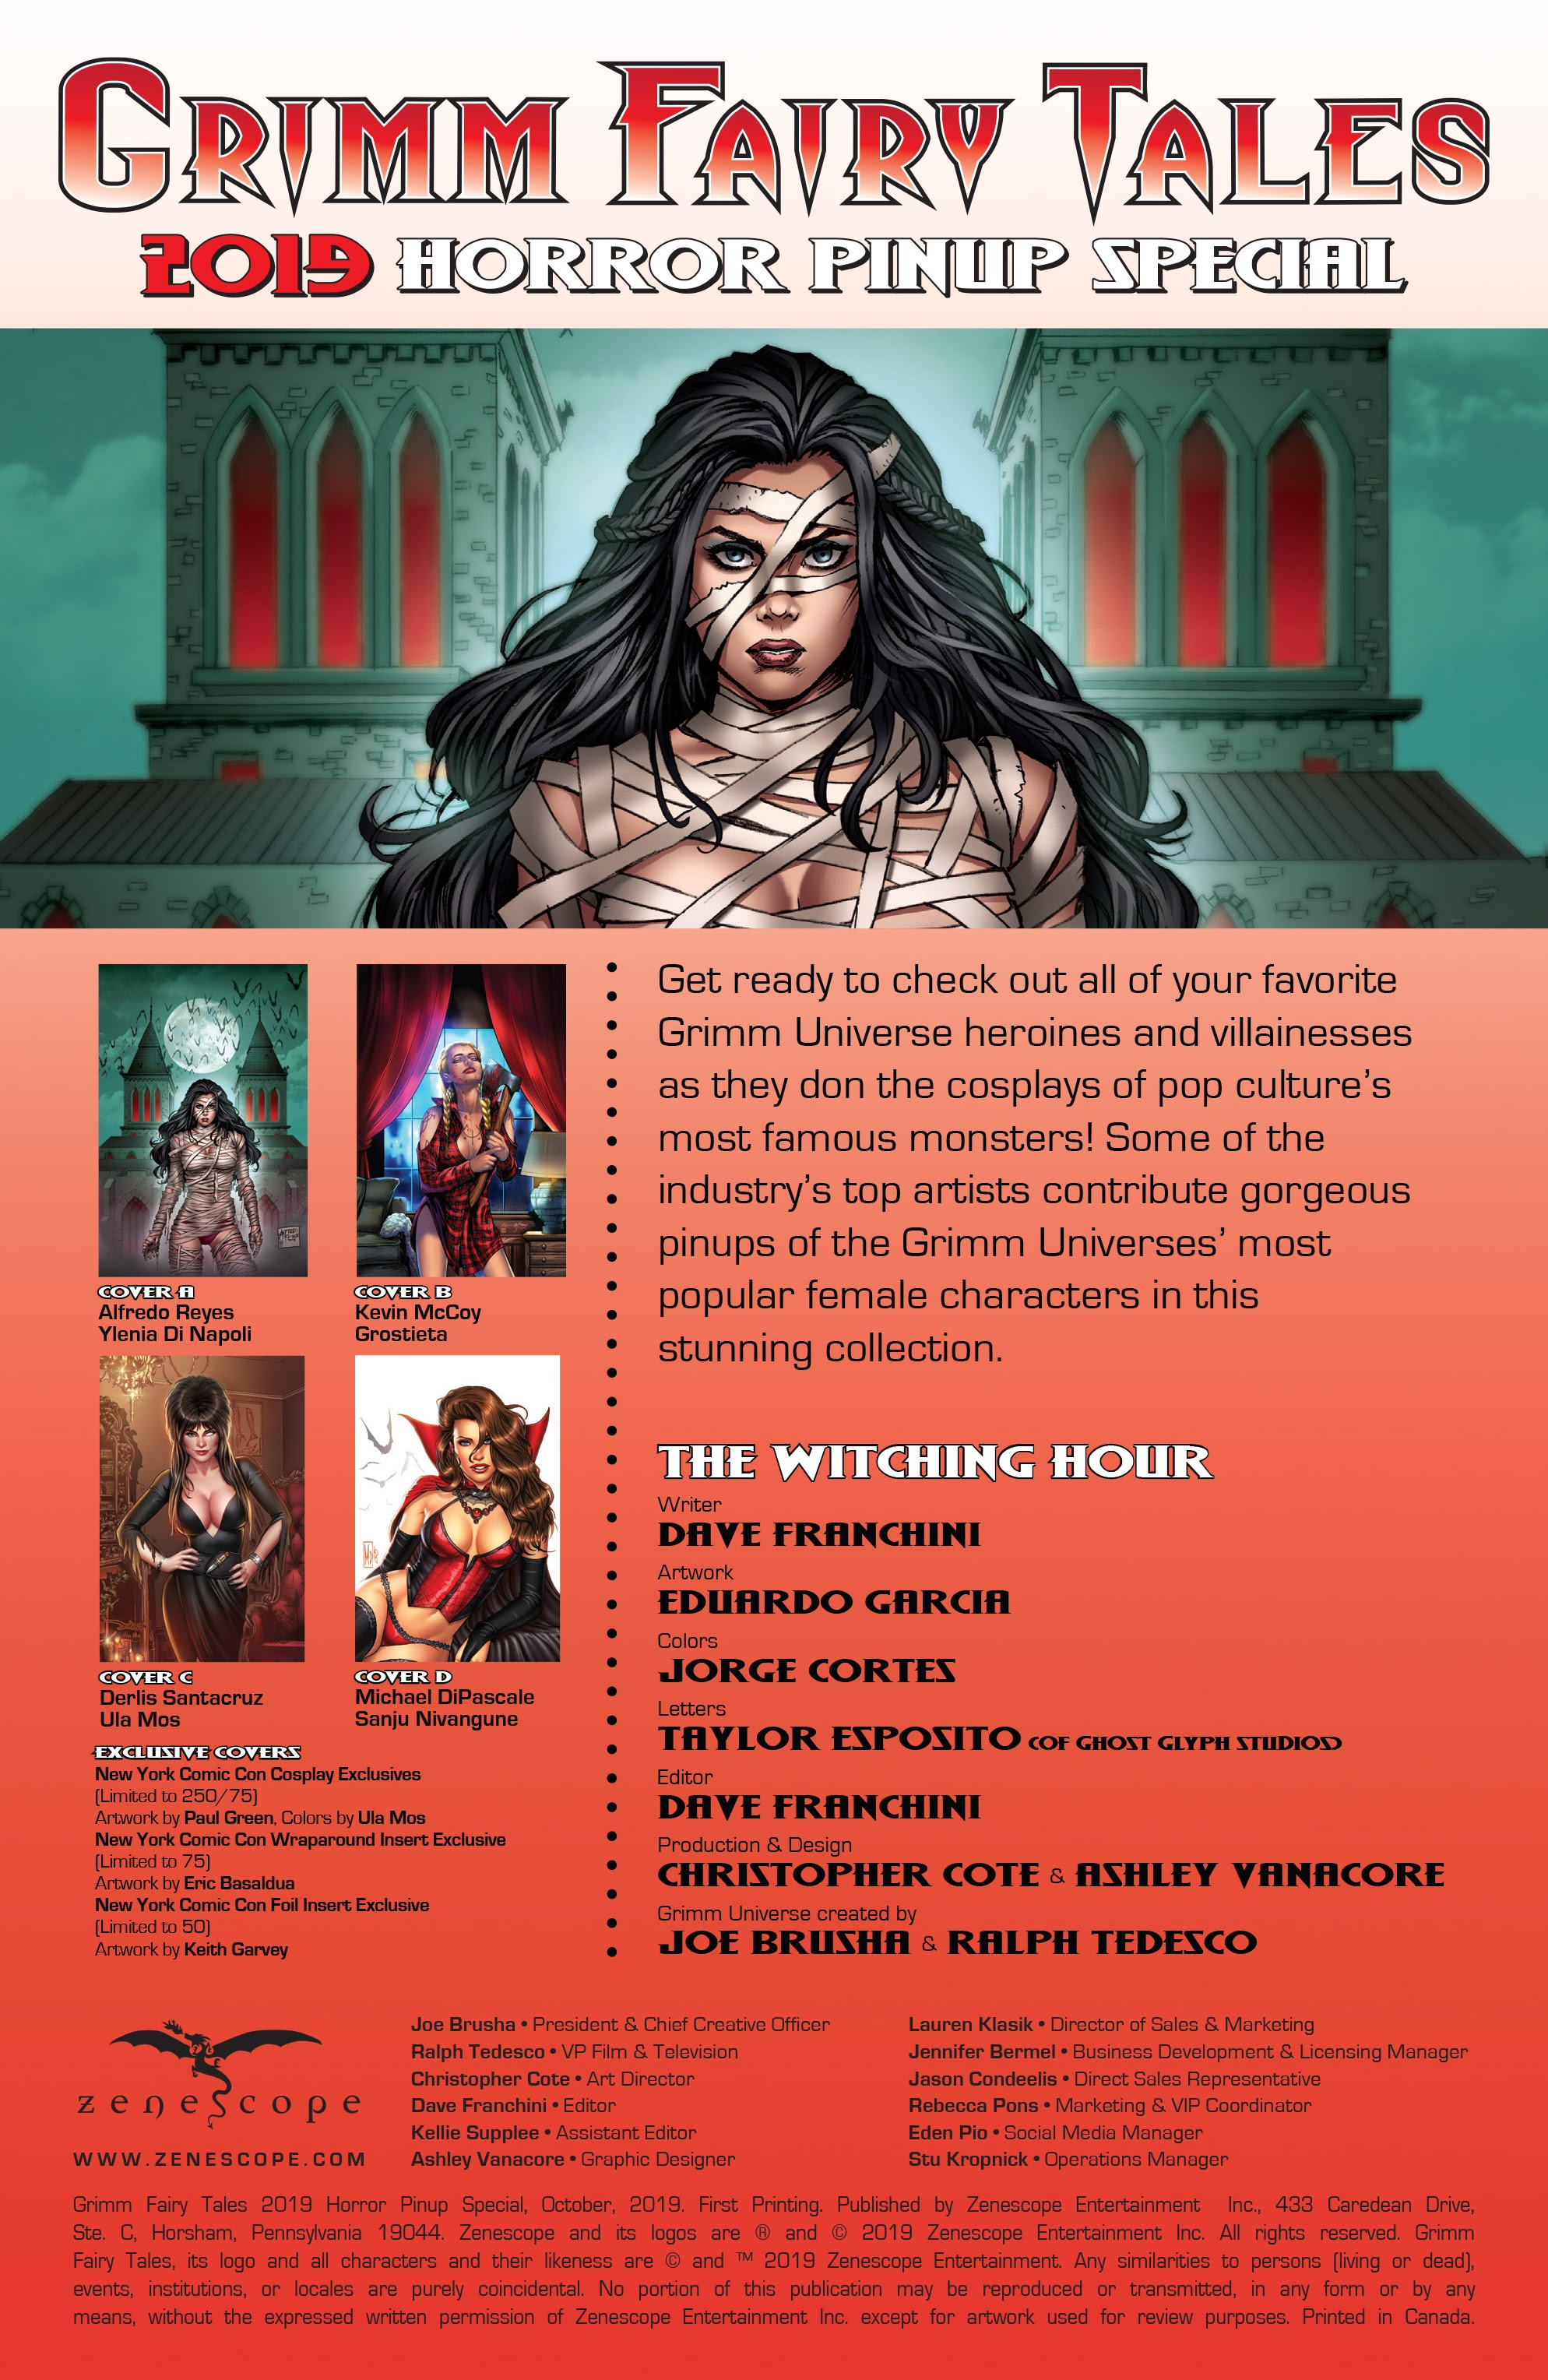 Grimm Fairy Tales 2019 Horror Pinup Special Full Page 2